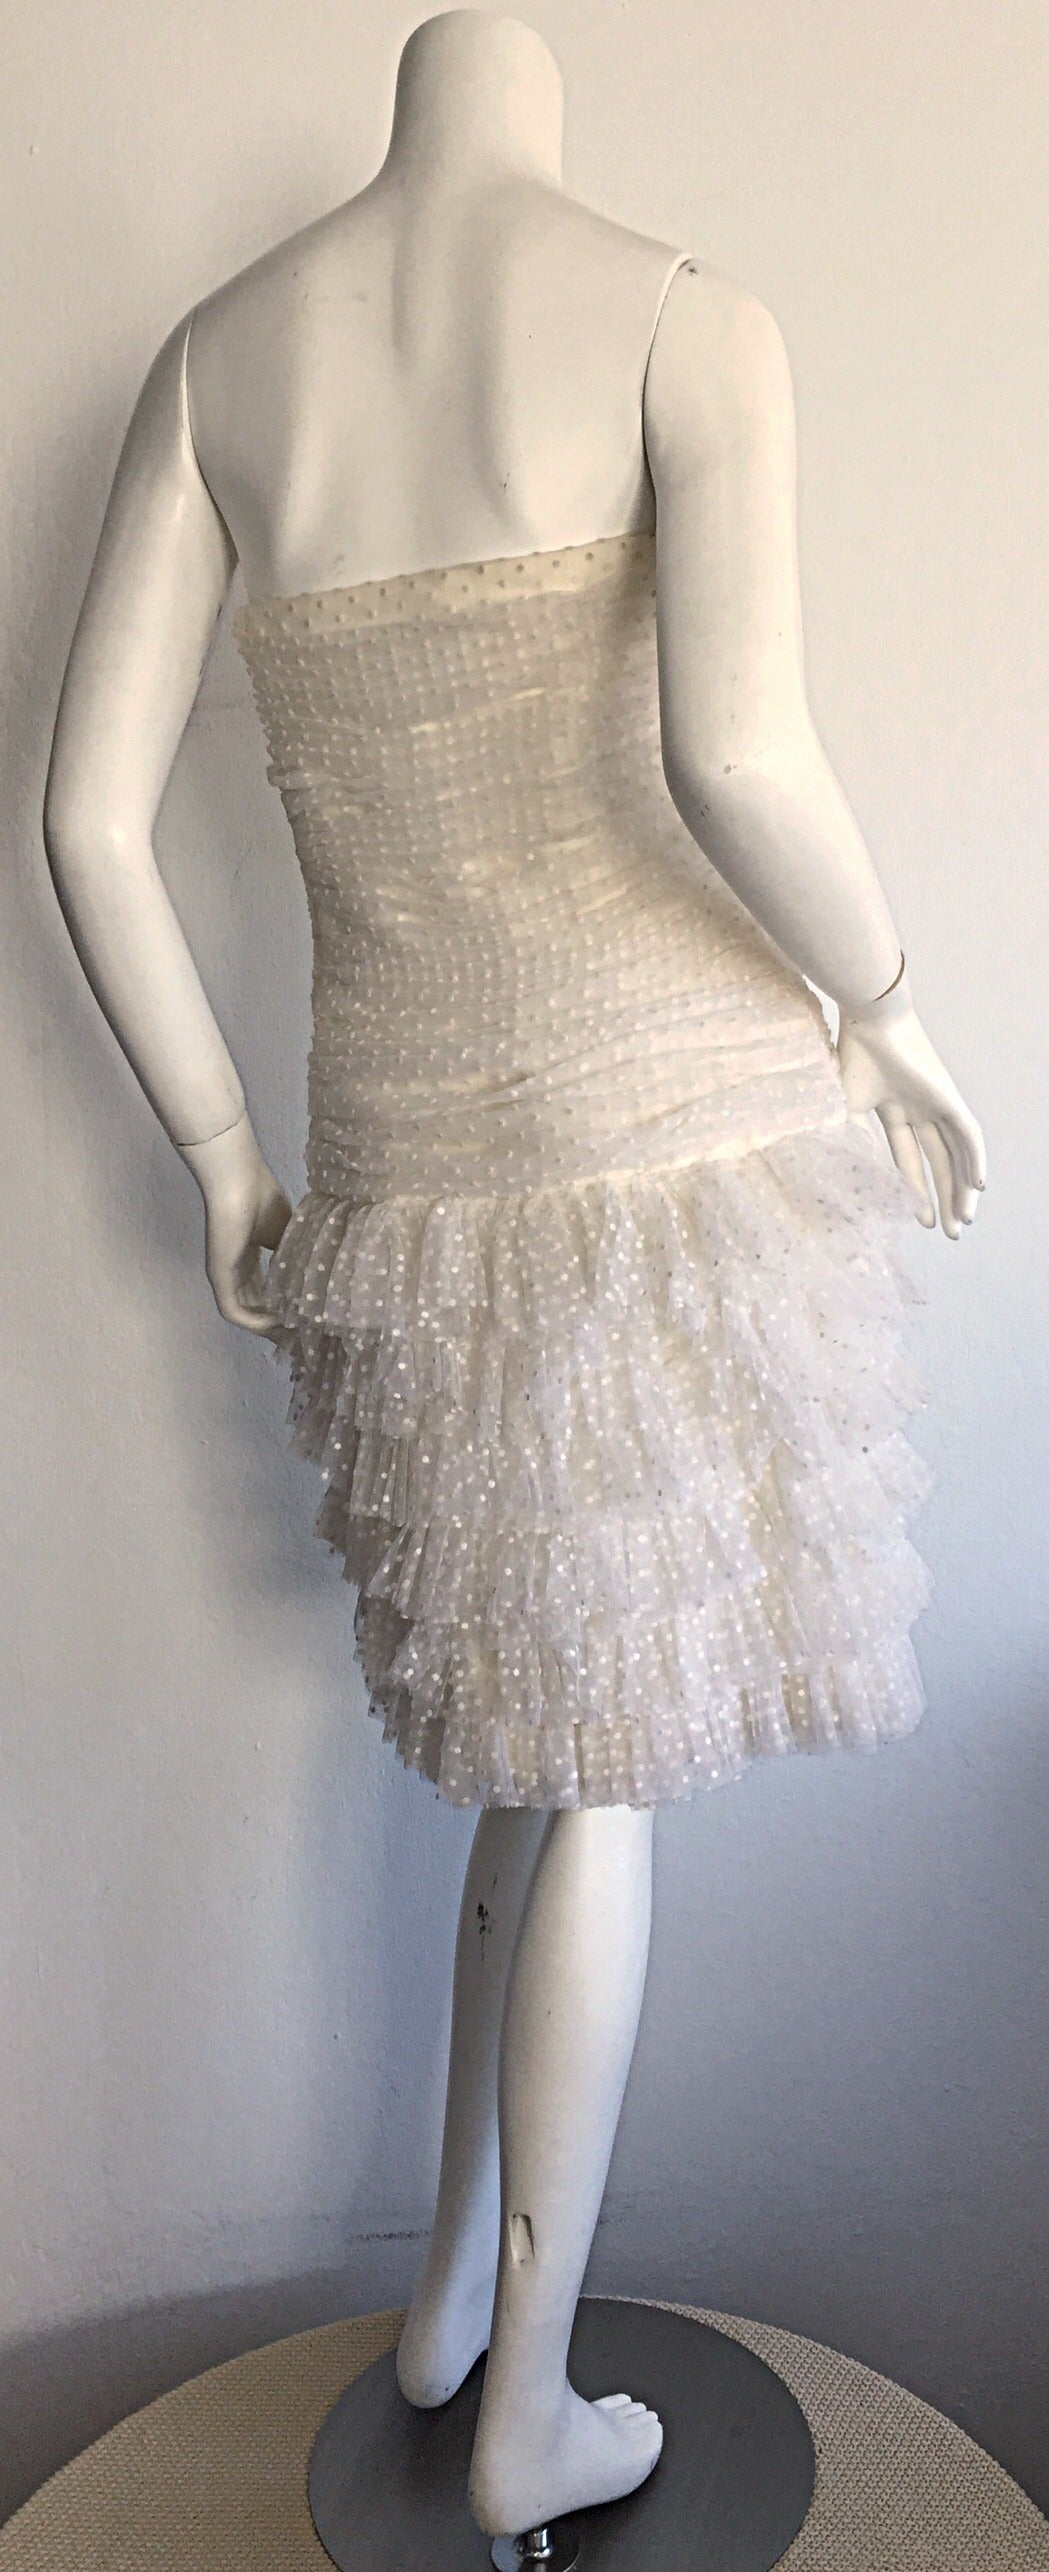 1990s Carolyne Roehm White Polka Dot ' Feathered ' Strapless Wedding Dress 6